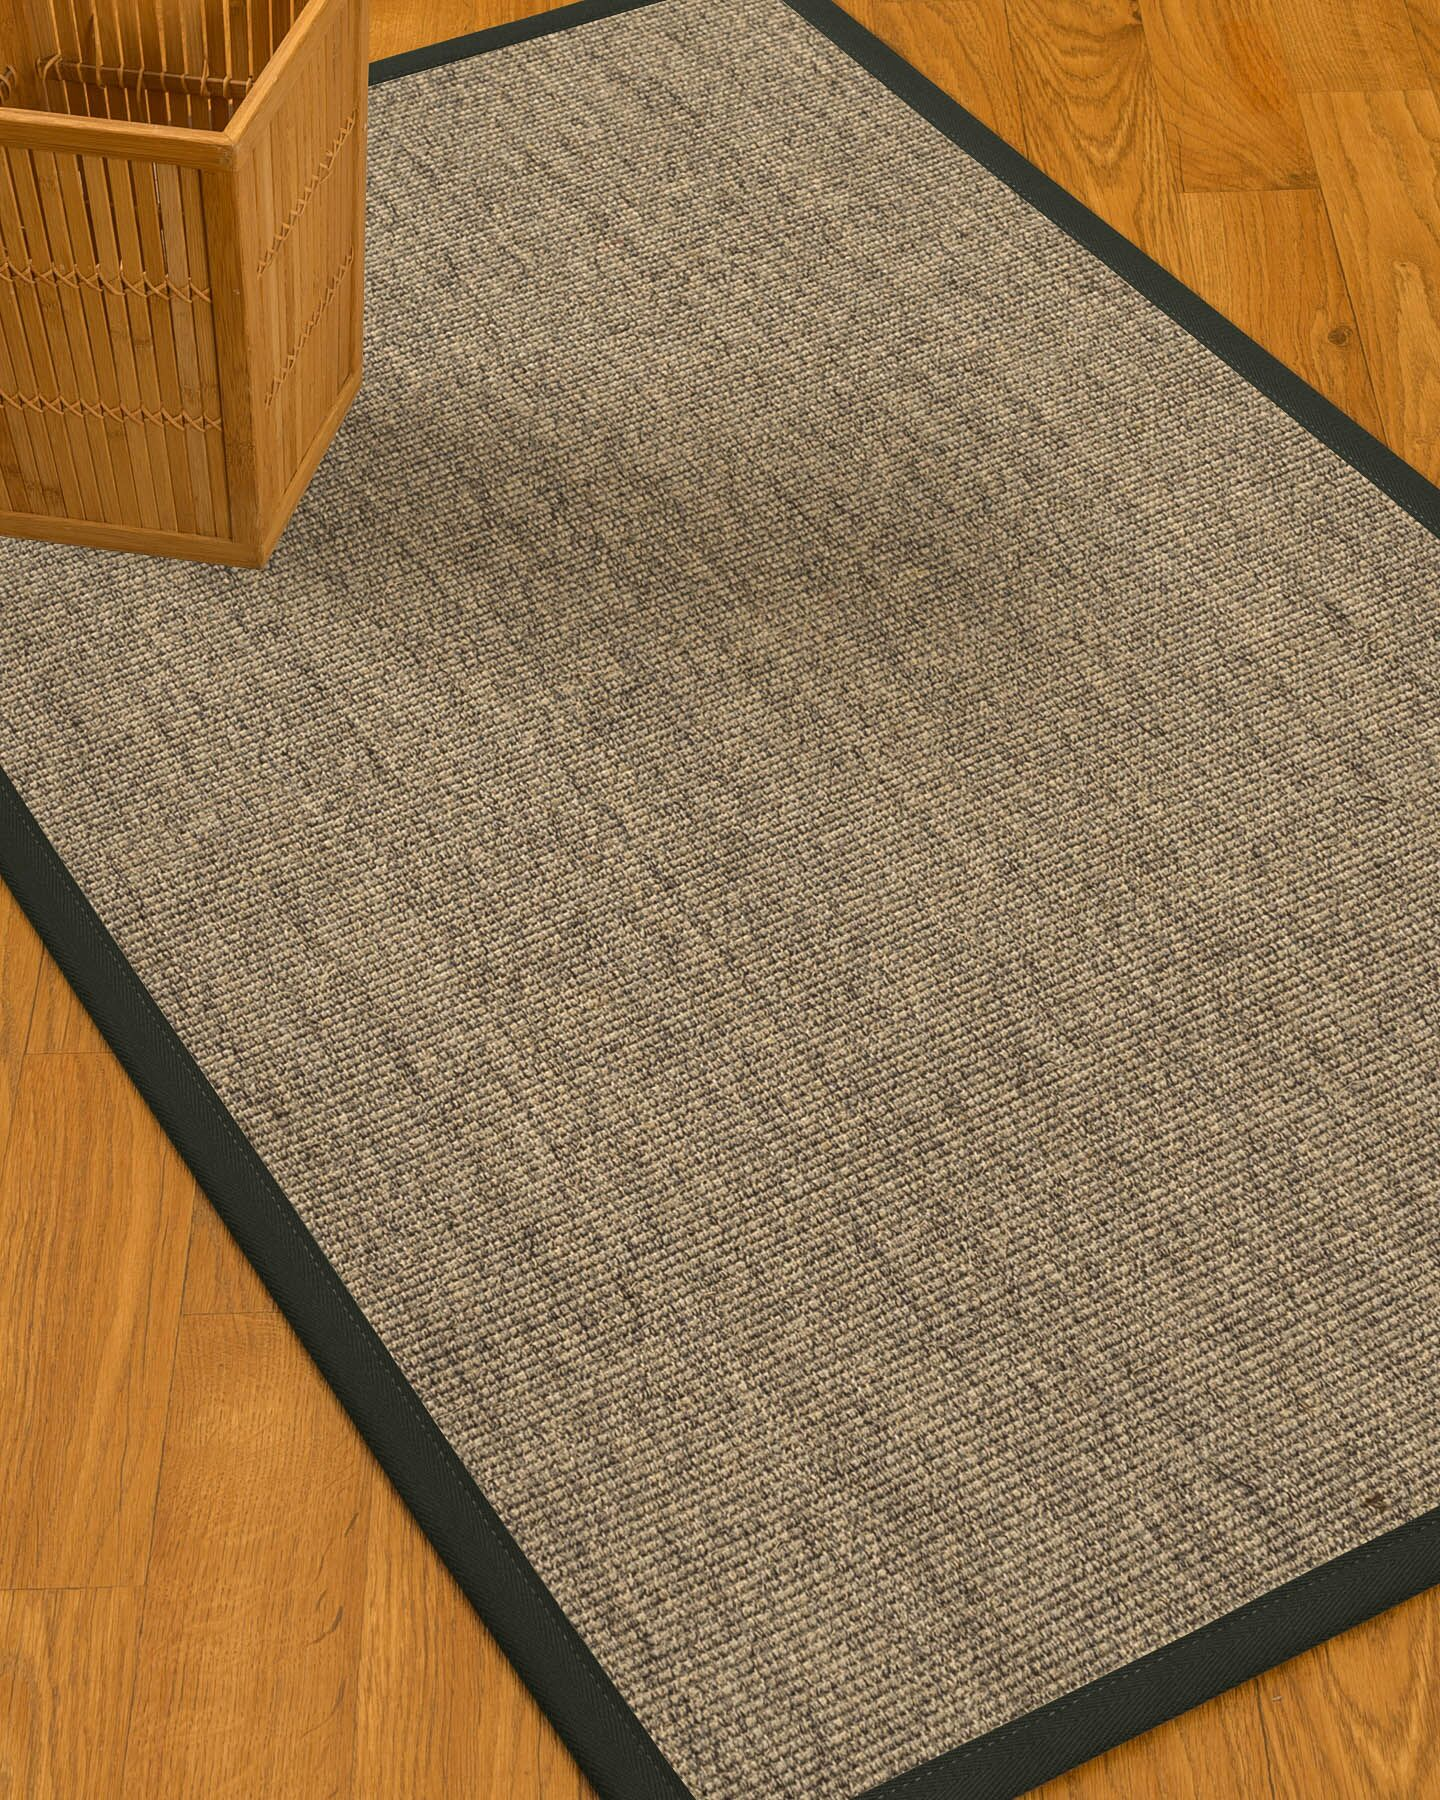 Mahan Border Hand-Woven Beige/Brown Area Rug Rug Size: Rectangle 6' x 9', Rug Pad Included: Yes